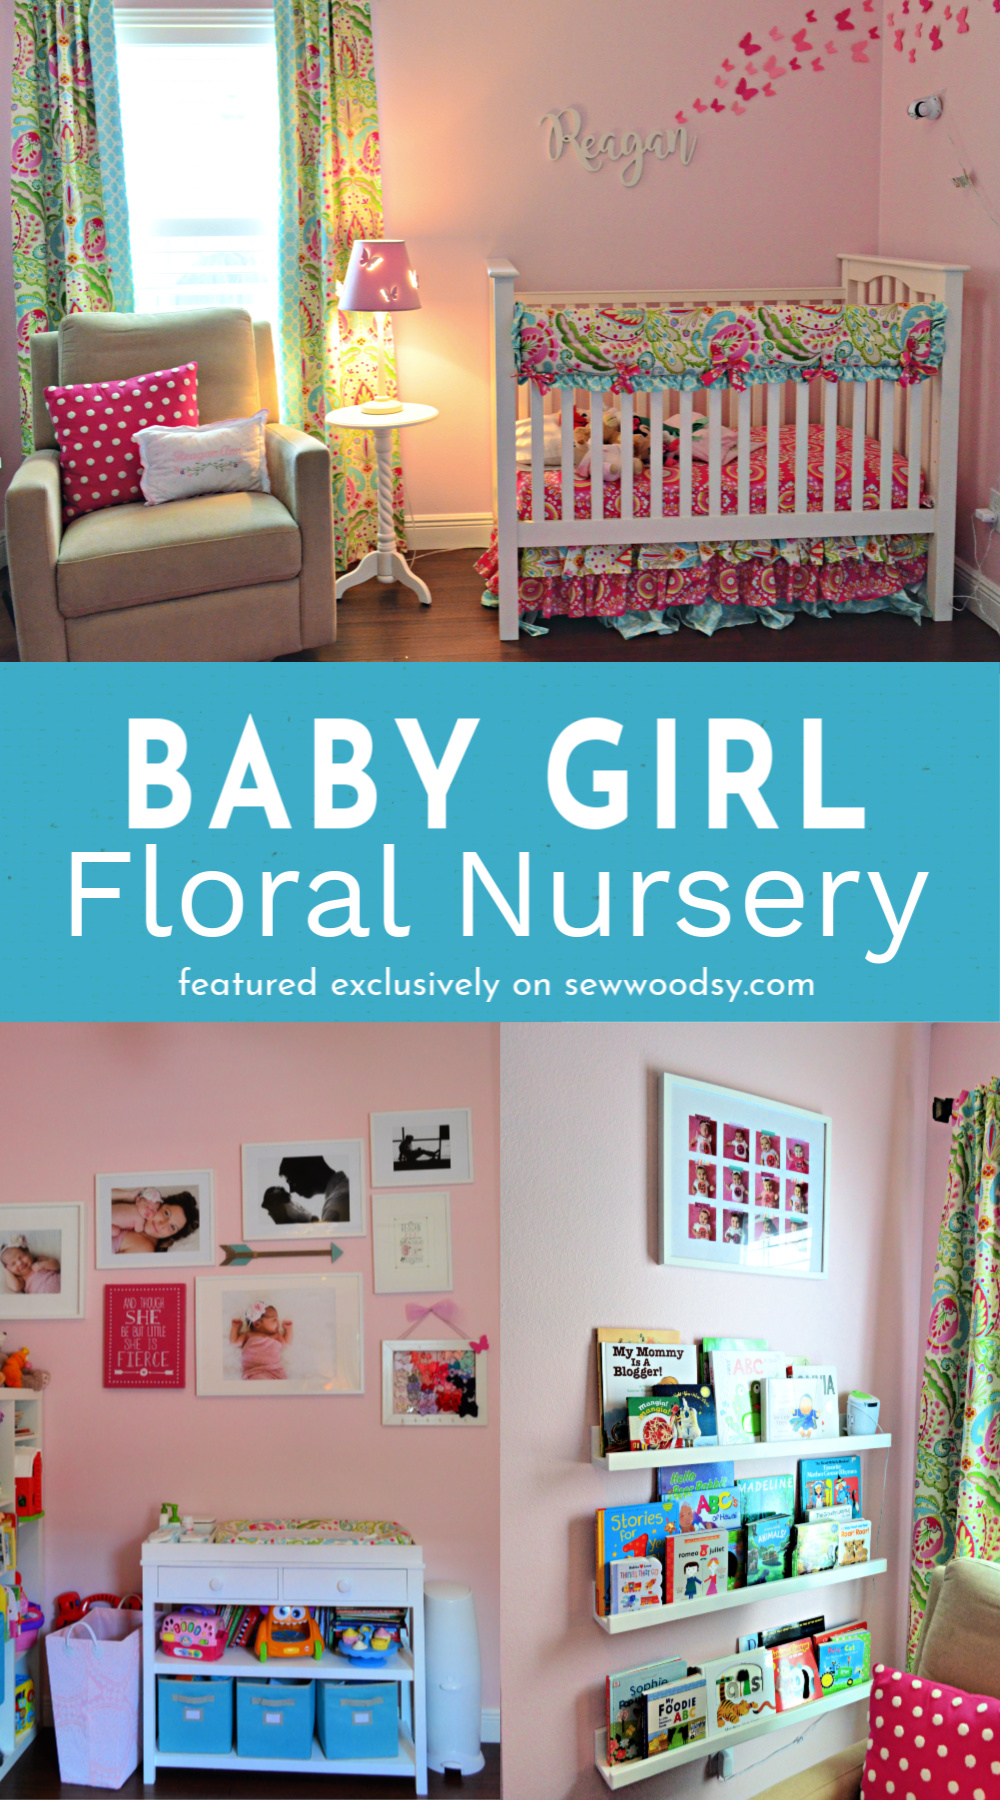 Two photos of a girls nursery with text on image for Pinterest.